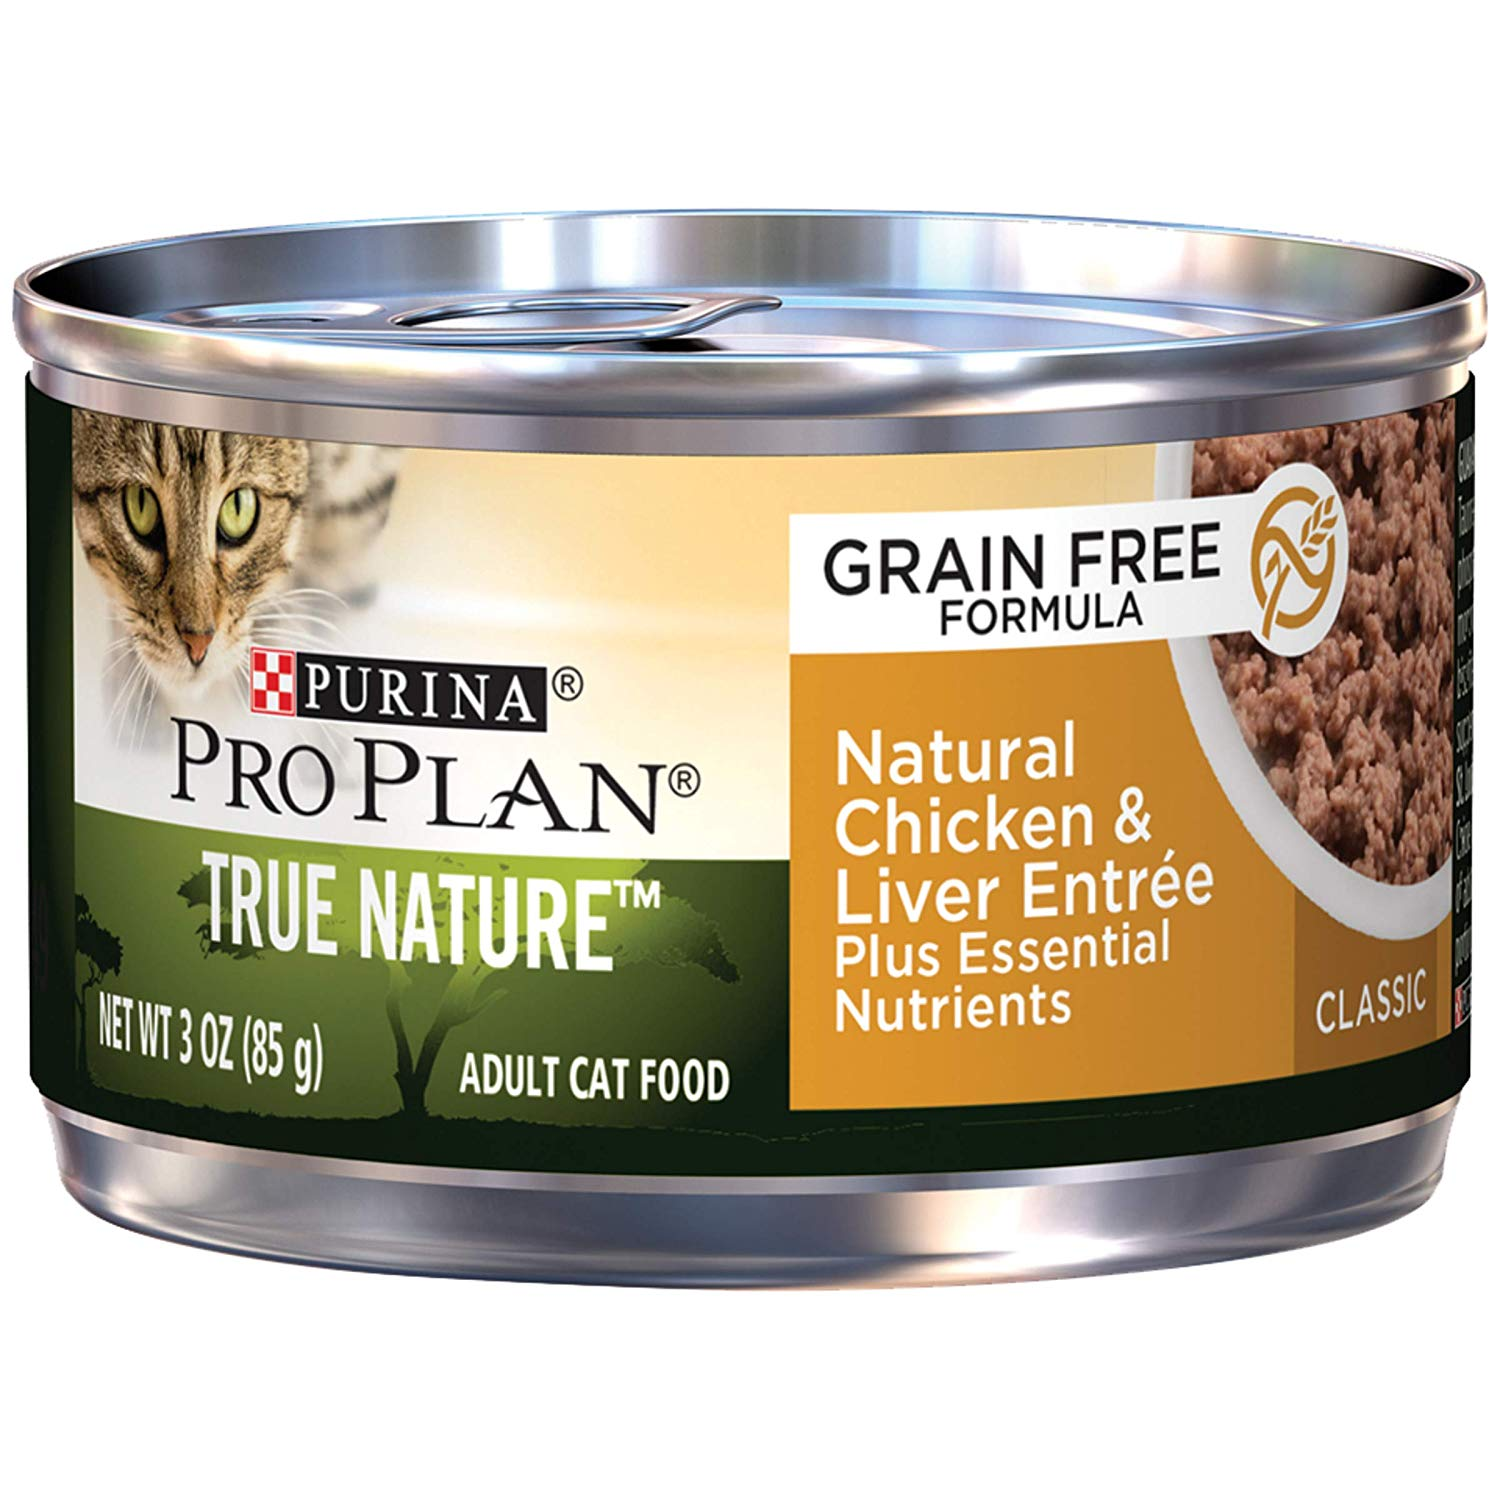 Purina Pro Plan Natural, Grain Free Pate Wet Cat Food, Chicken & Liver Entree